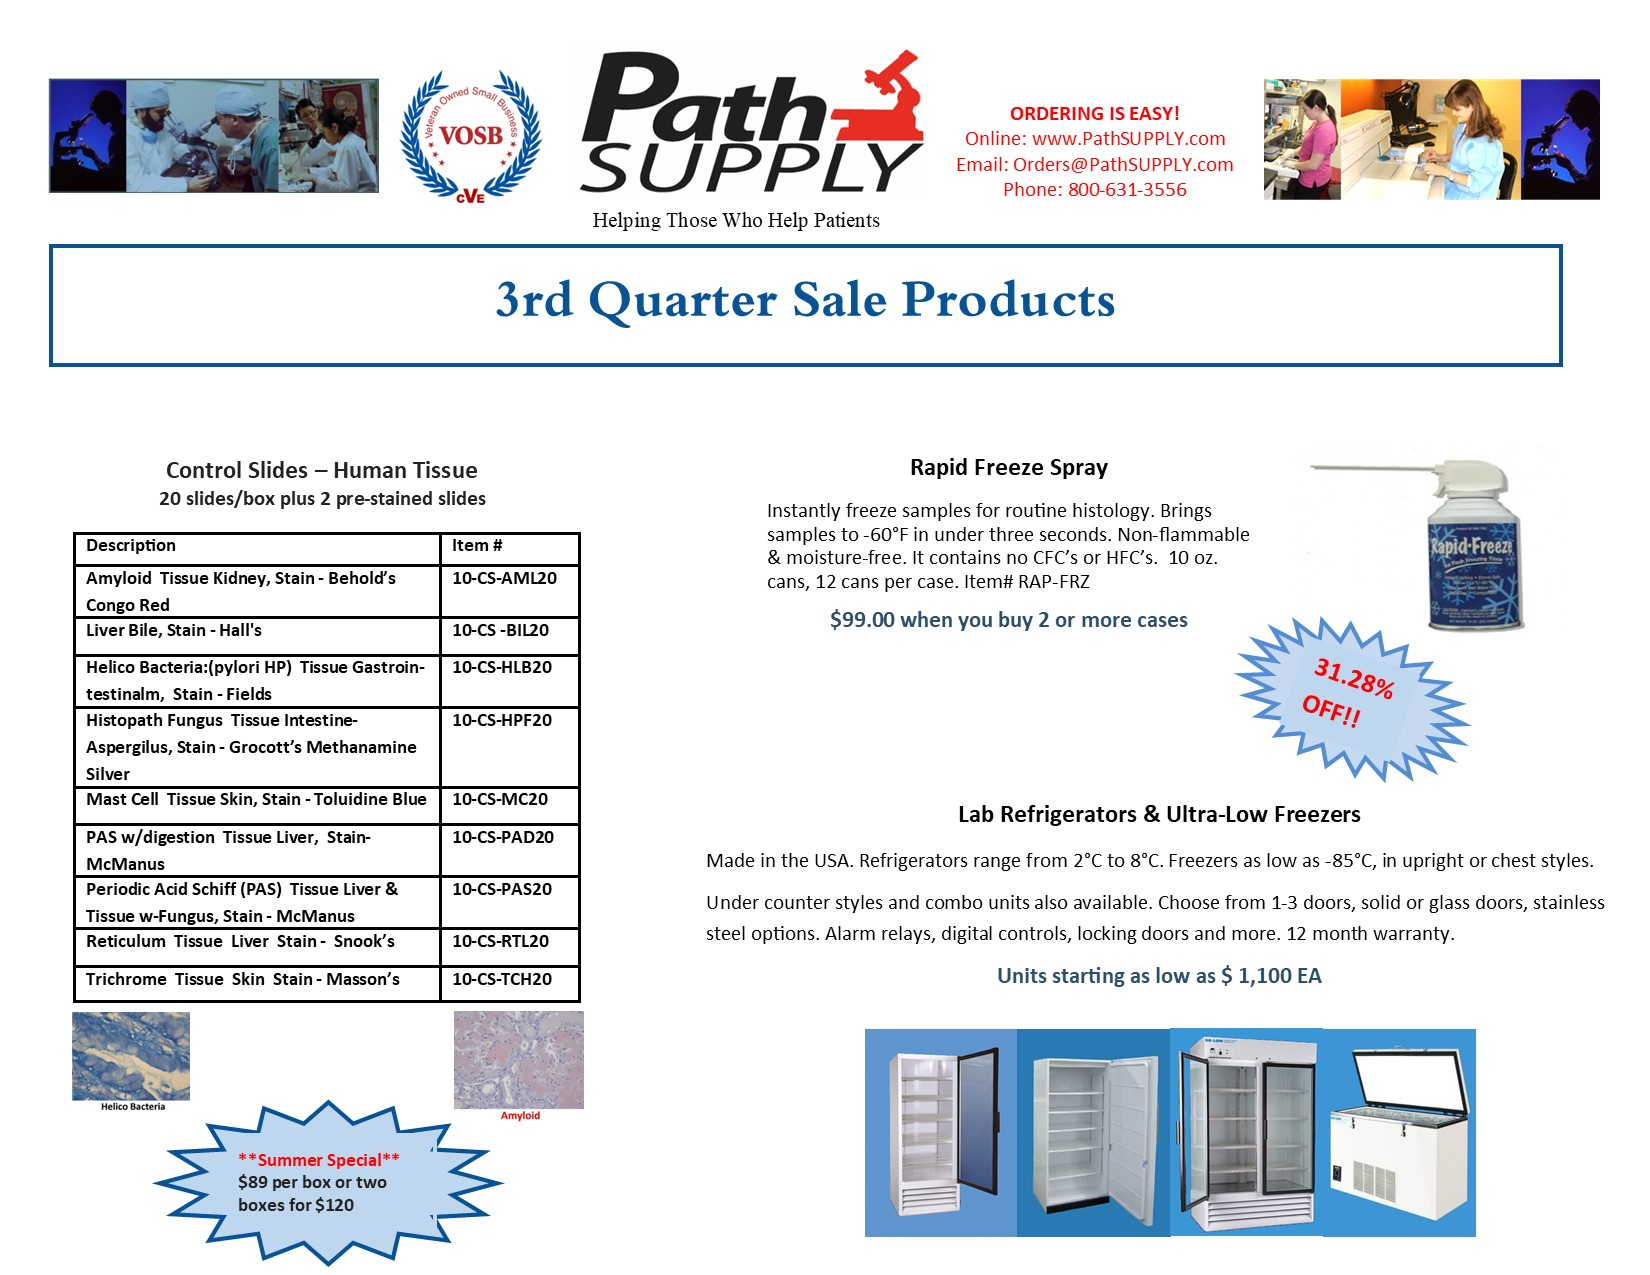 3rd Quarter Sale Products